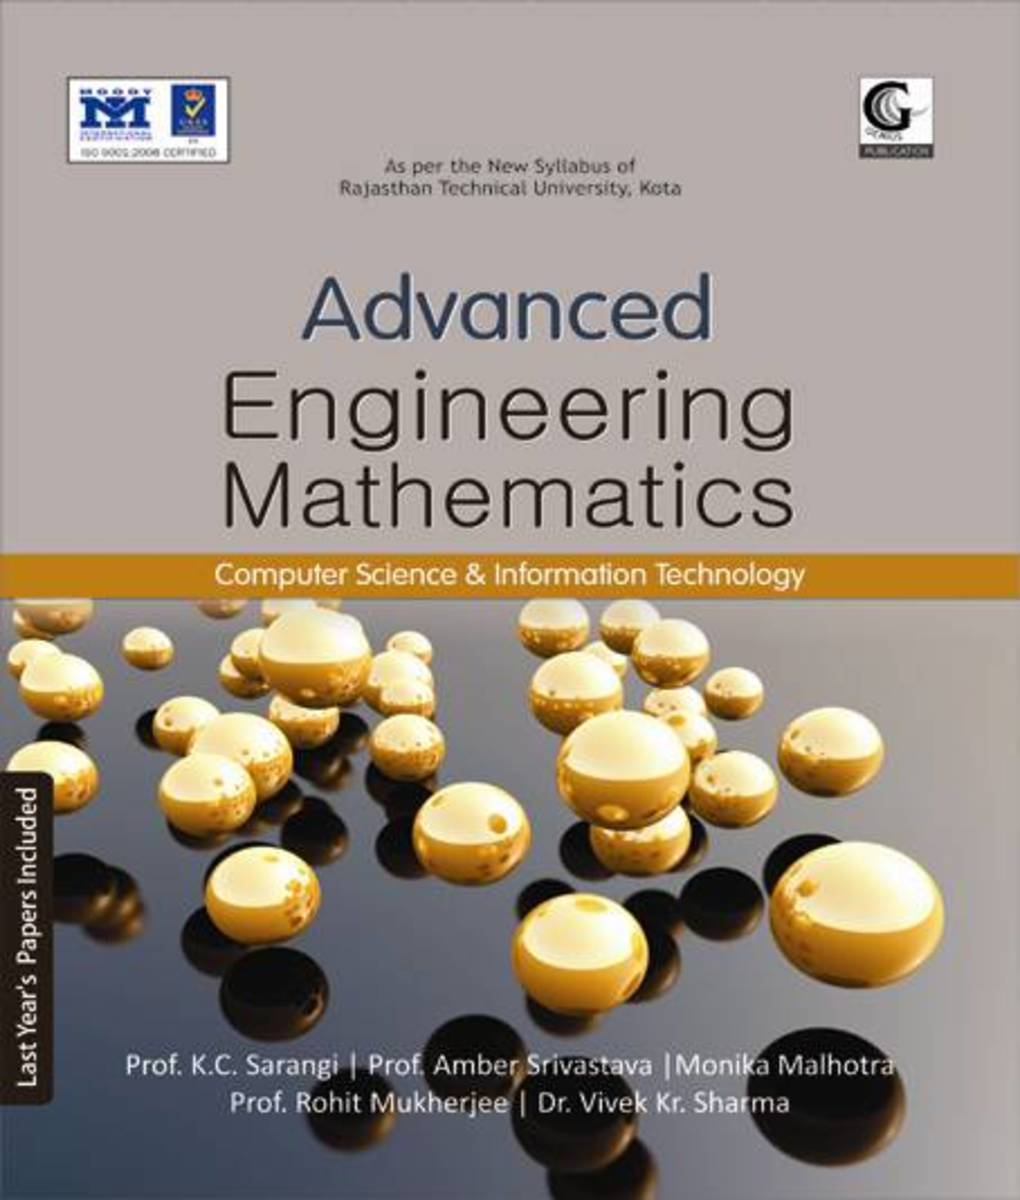 Engineering Mathematics-III Book for CS/IT Branch